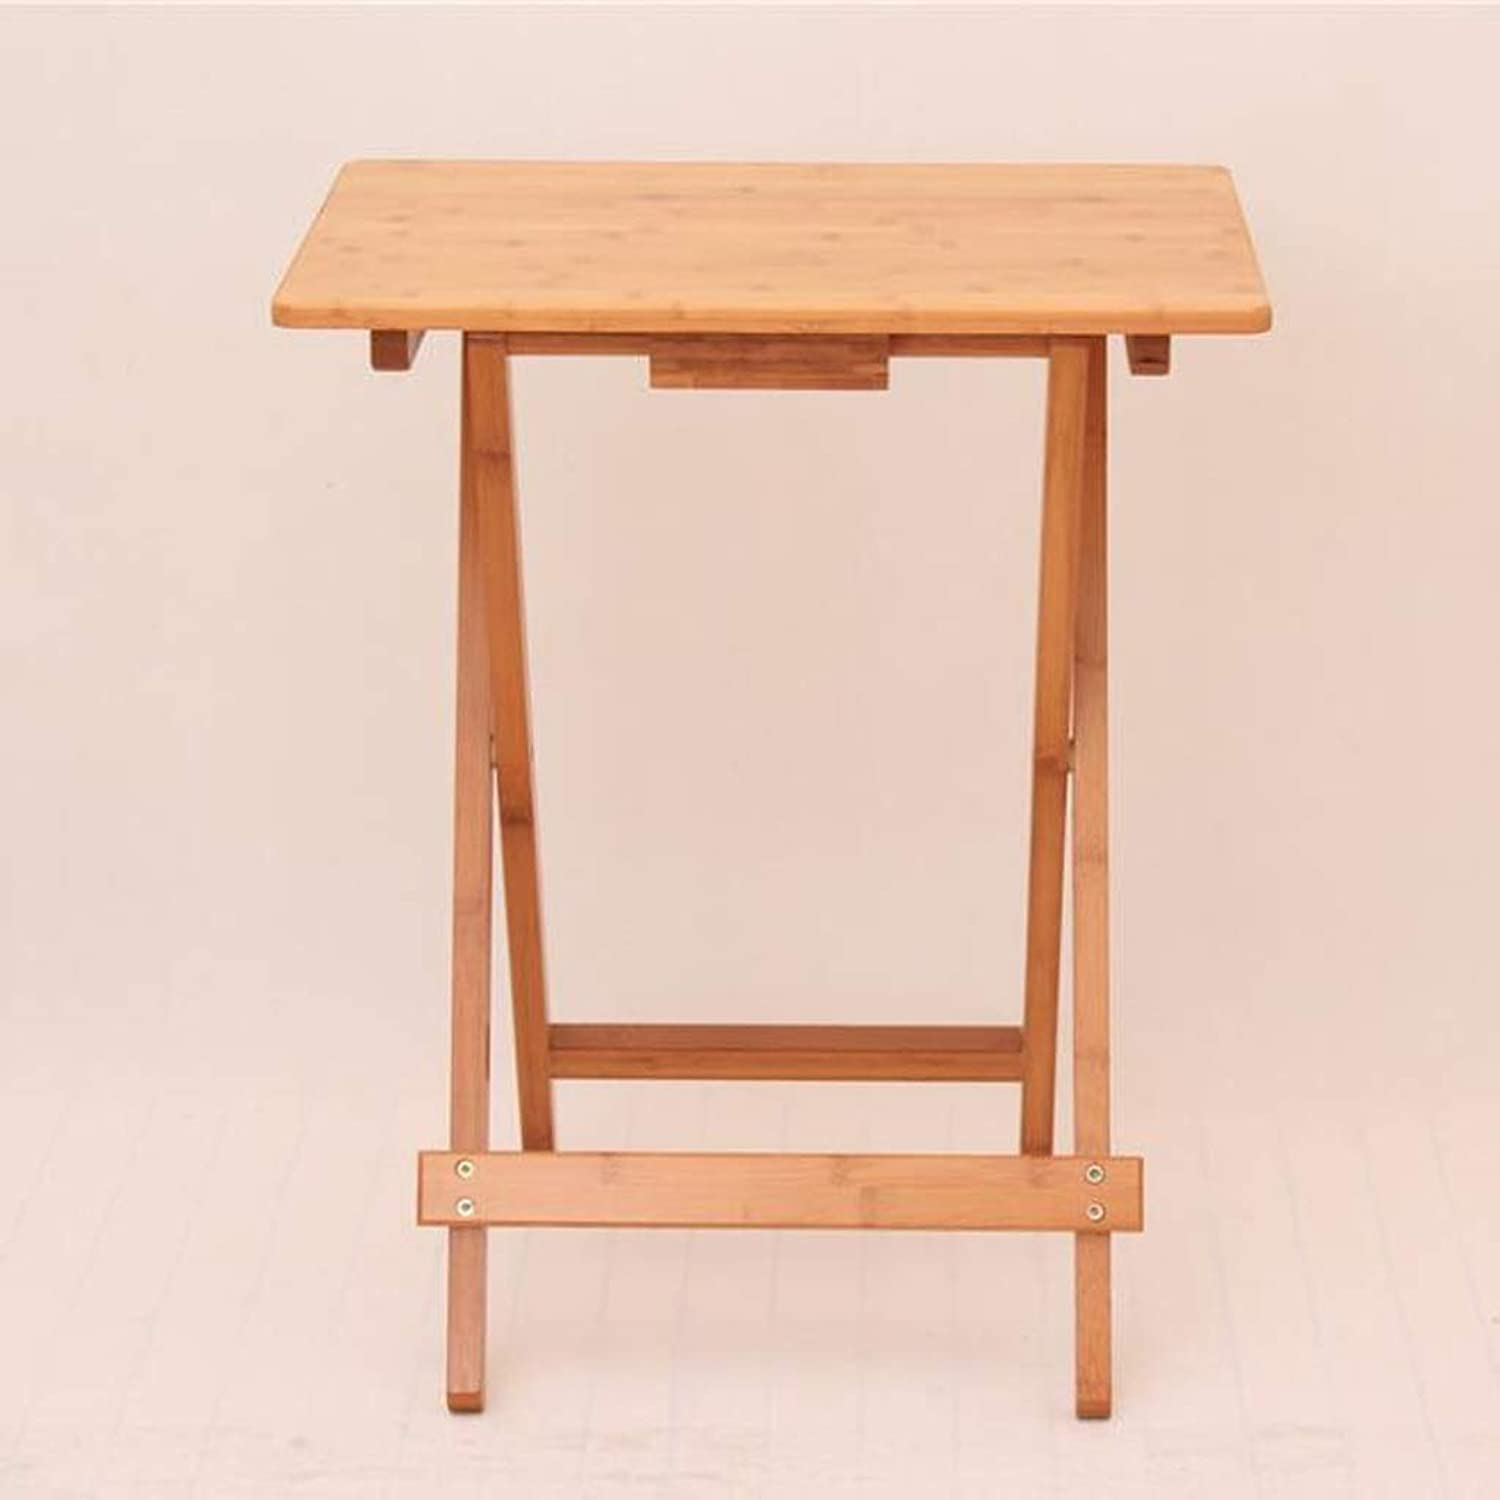 JSFQ Wooden Snack Table Home Simple Folding Table Student Desk   50 × 35.6 × 68cm, Two Folding Table (Size   50×36.5×62cm)